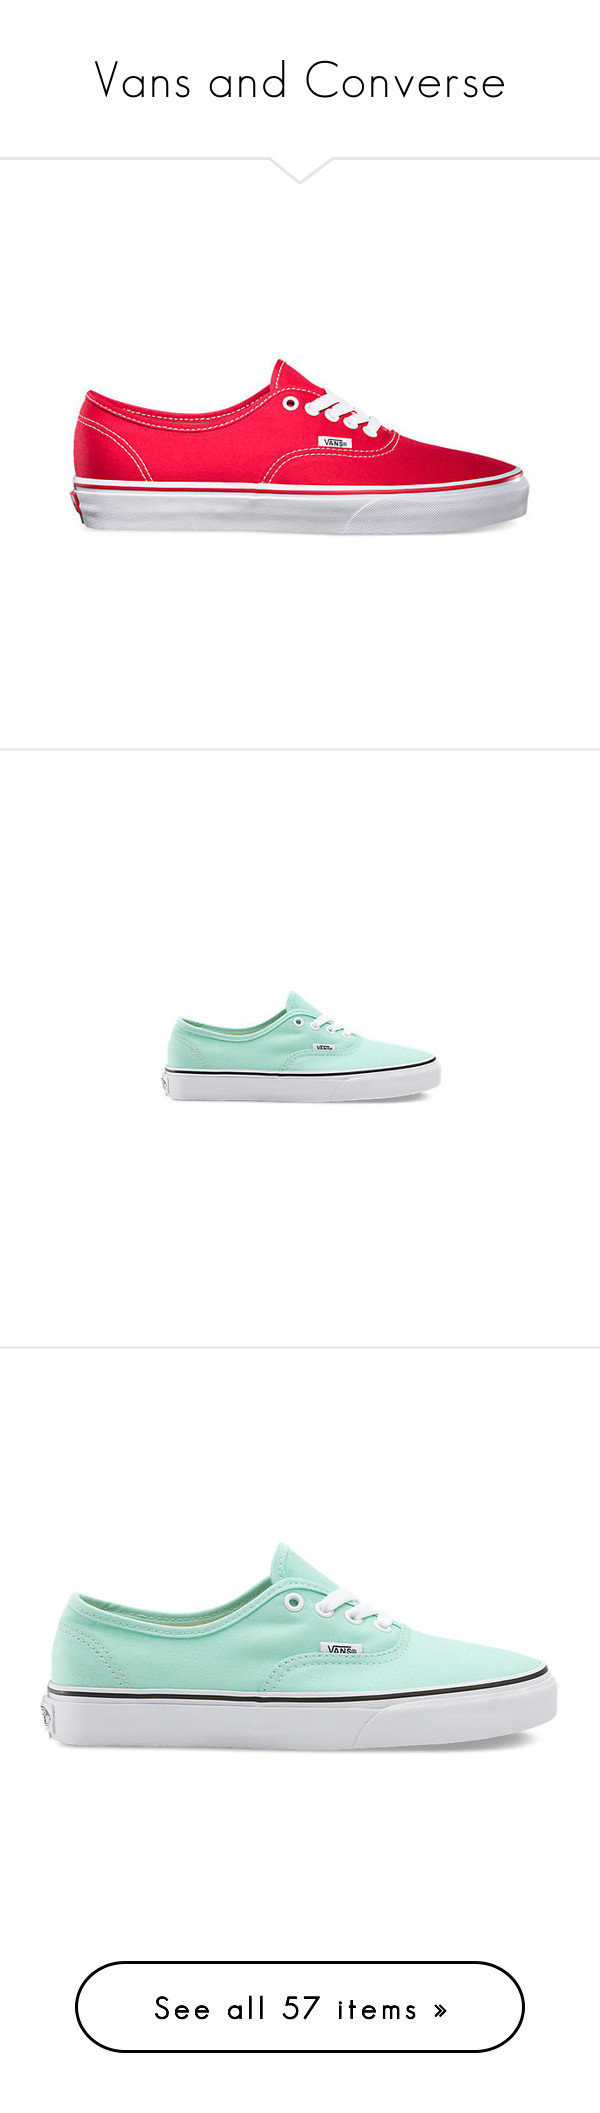 """Vans and Converse"" by squidfashion ❤ liked on Polyvore featuring shoes, sneakers, vans, red, lace up sneakers, vans trainers, canvas lace up sneakers, laced sneakers, low profile sneakers and vans sneakers"